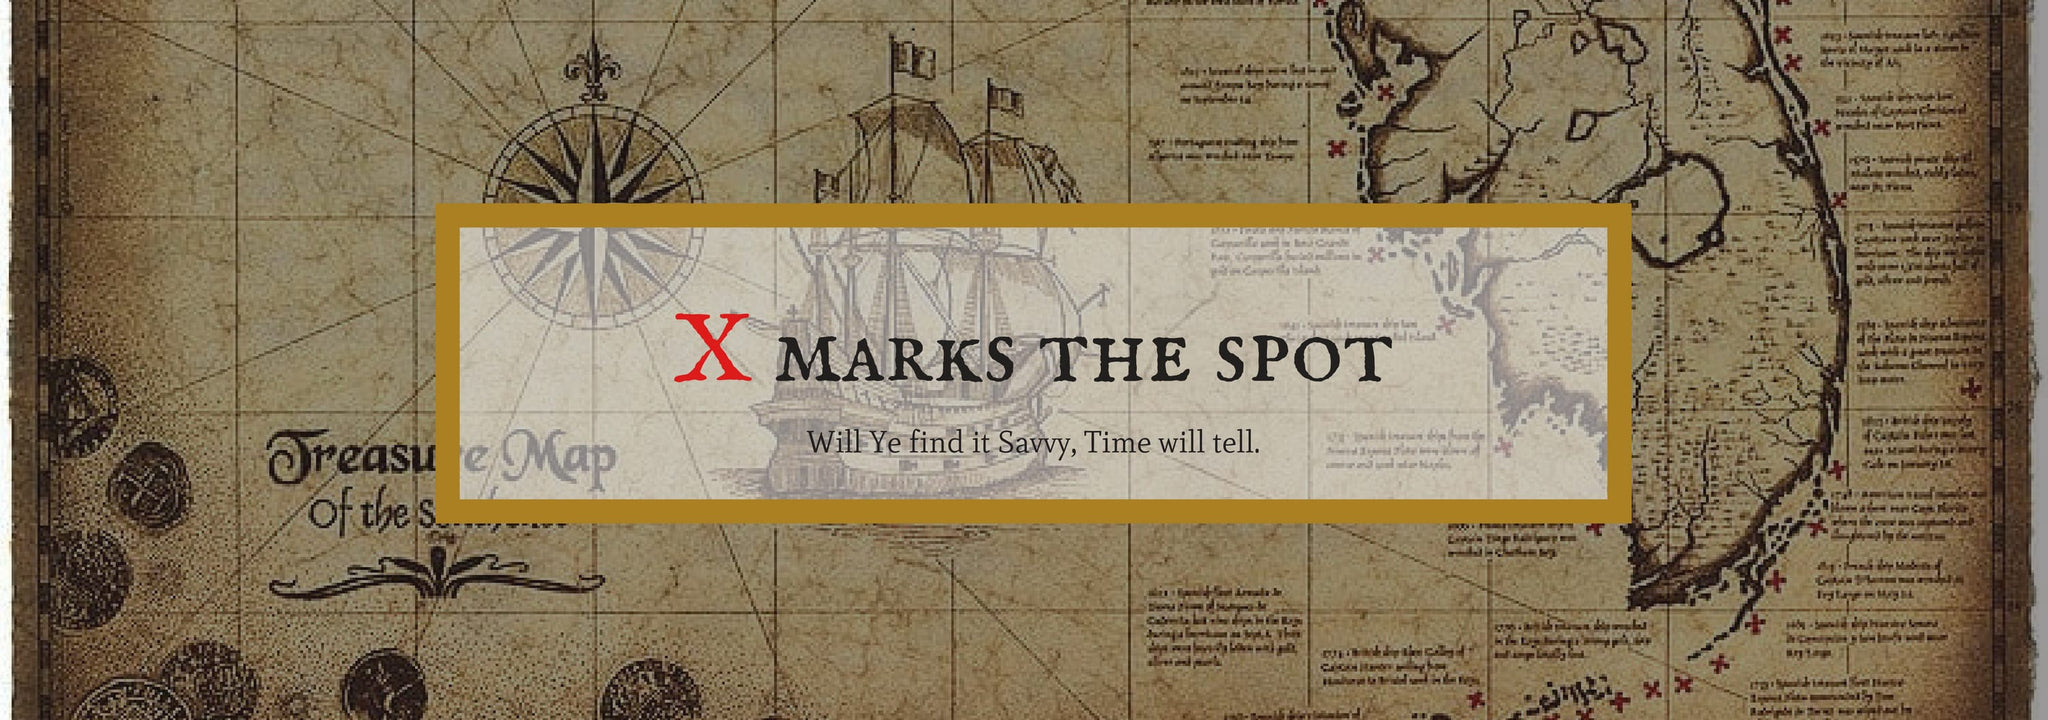 X marks the spo,t Savvy